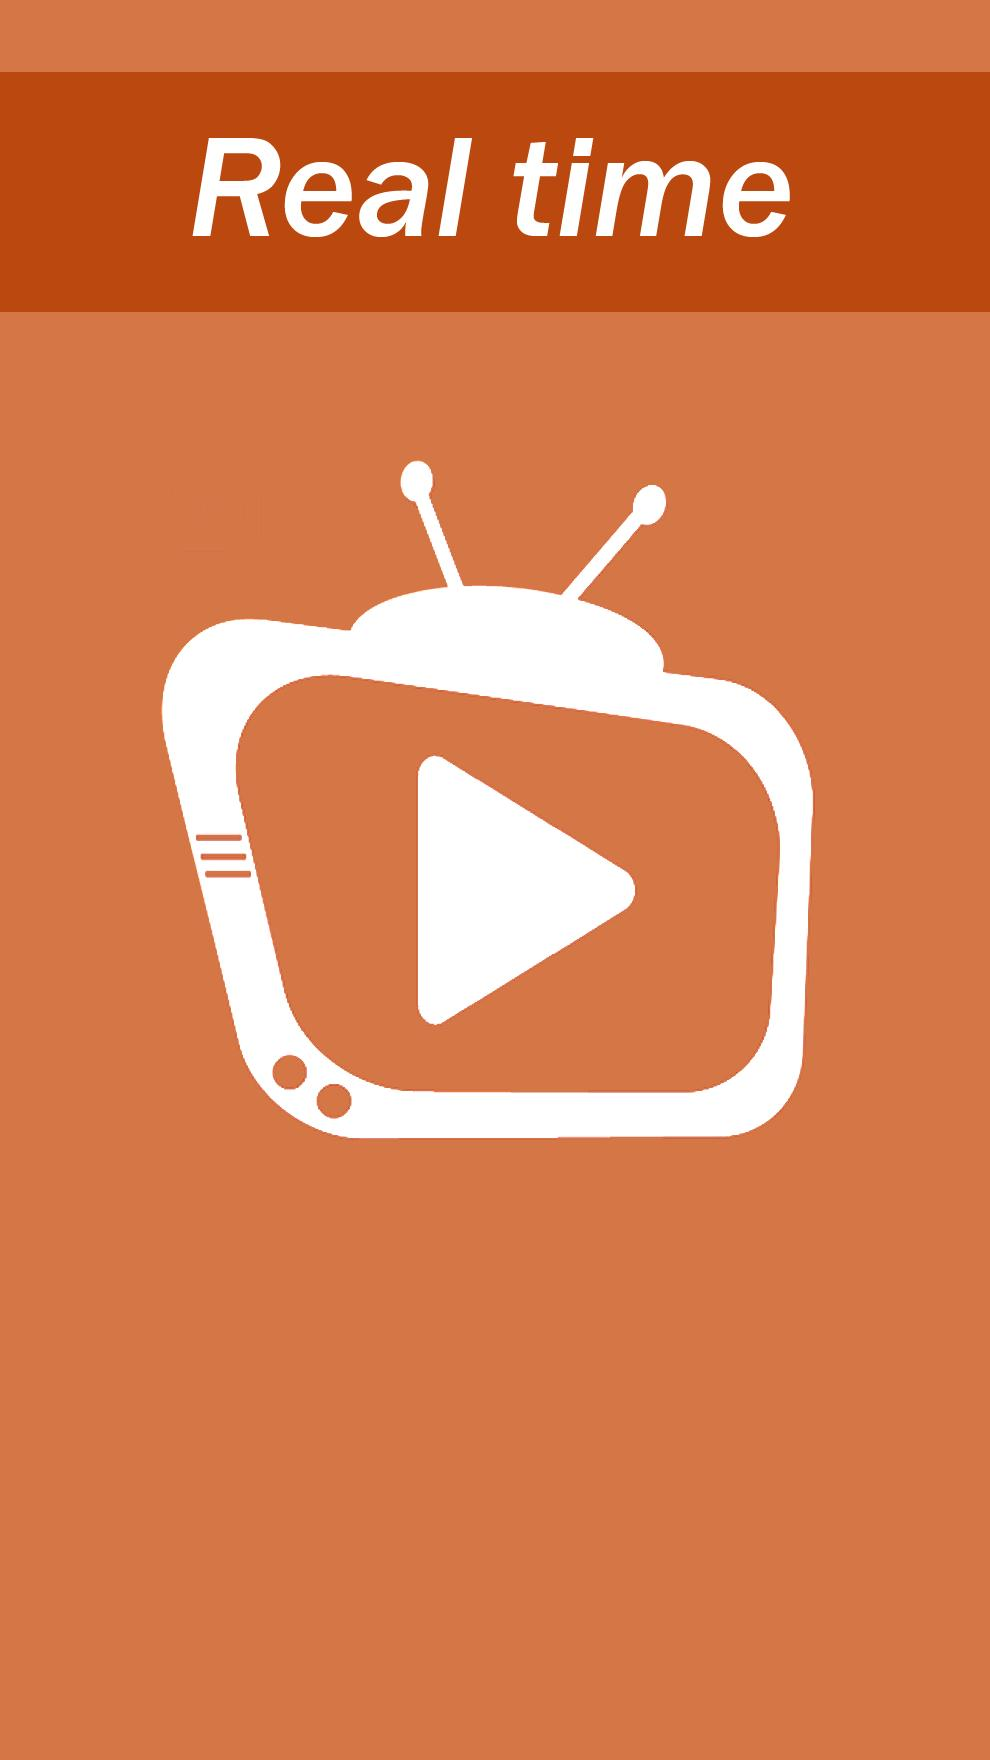 TeaTv for Android - APK Download